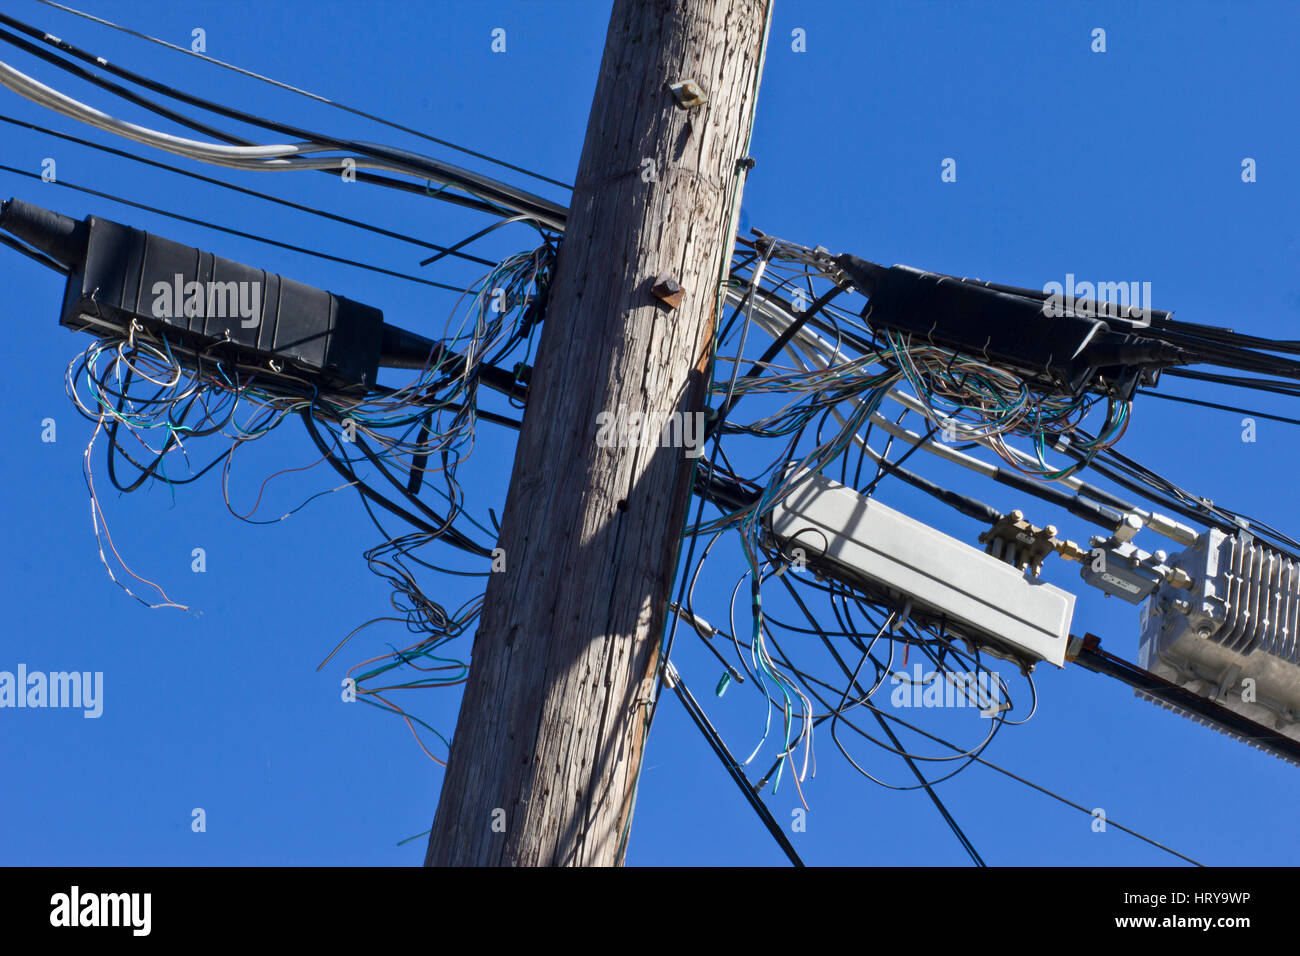 Telephone Terminals in Disarray on Phone Pole I - Stock Image